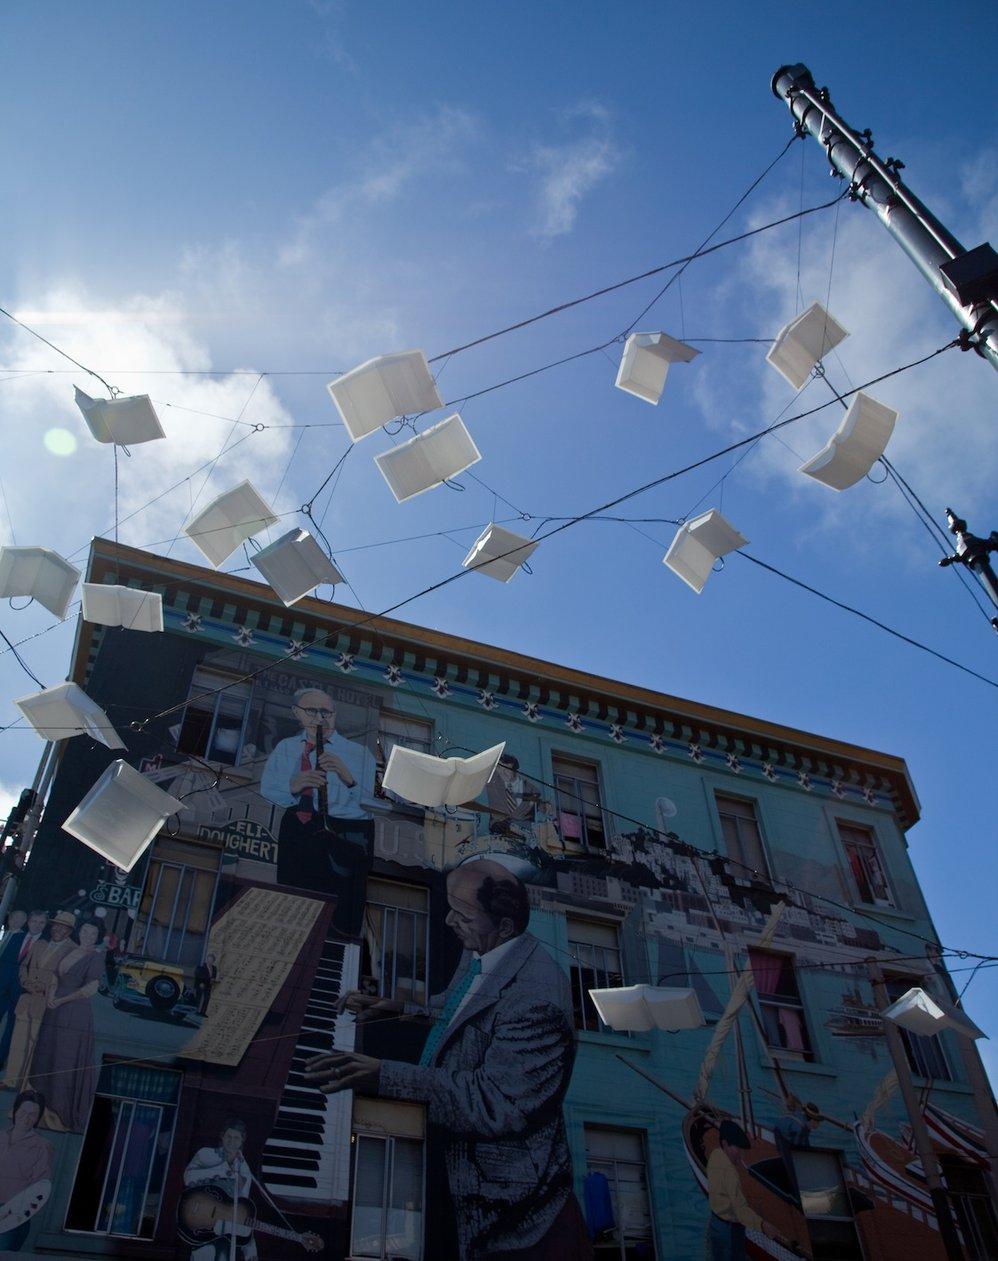 Books on a Wire